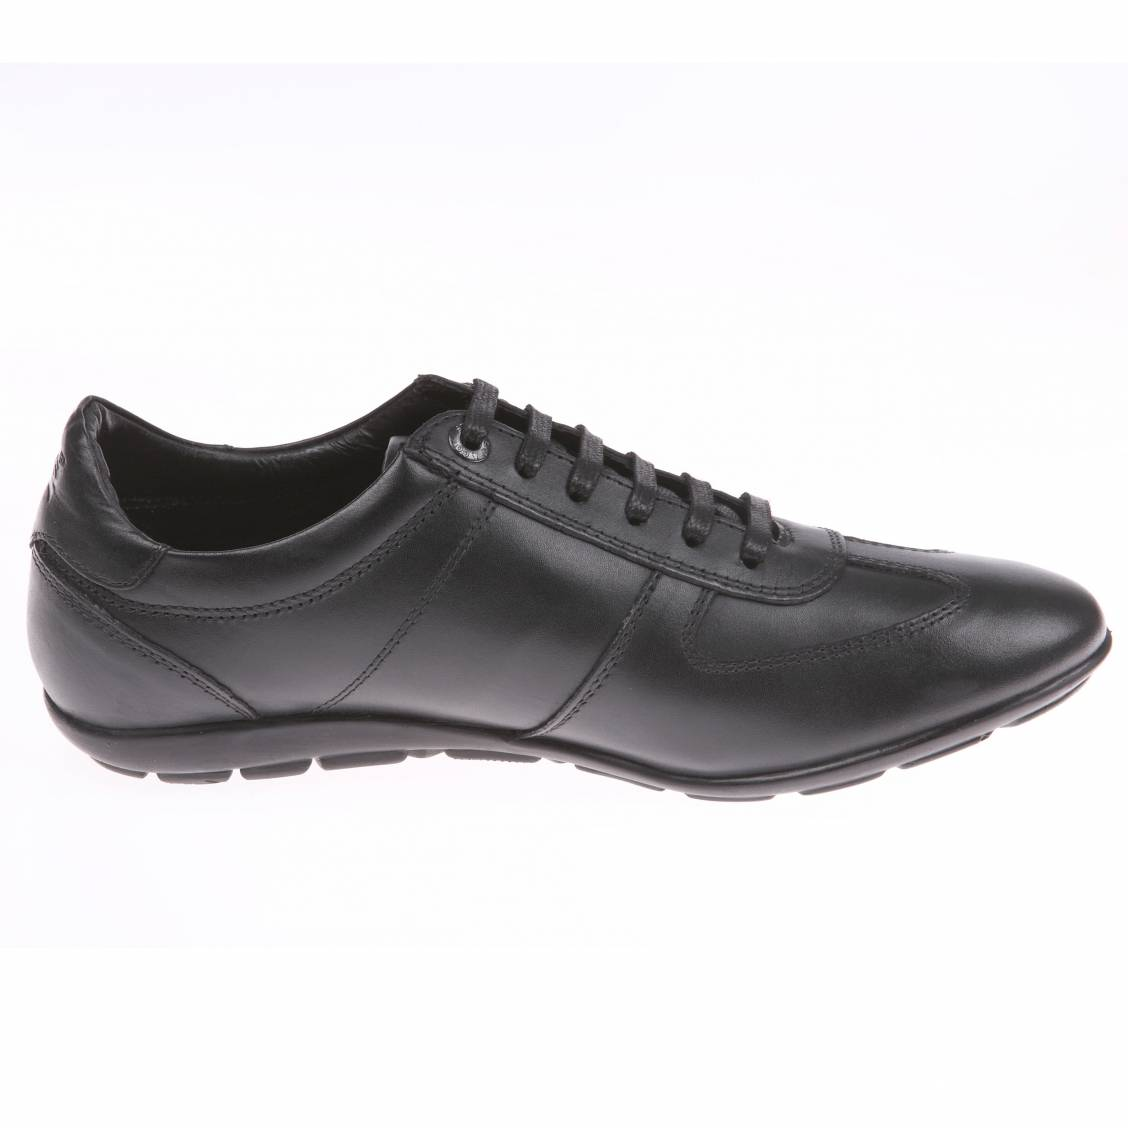 Chaussures Levi's noires homme OukiG